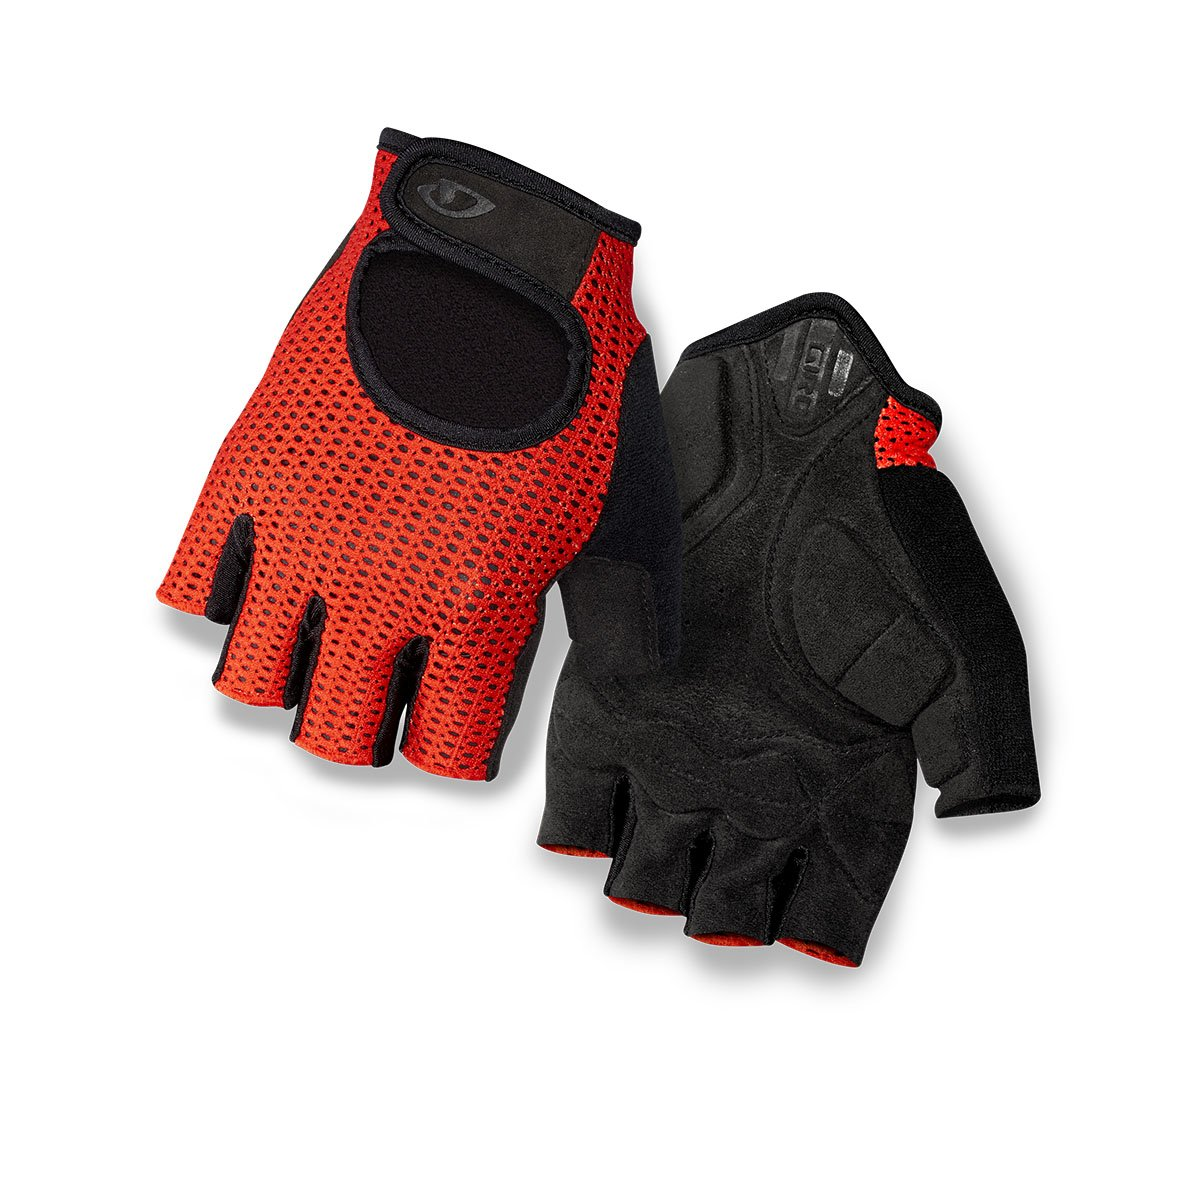 Giro SIV Road Bike Gloves